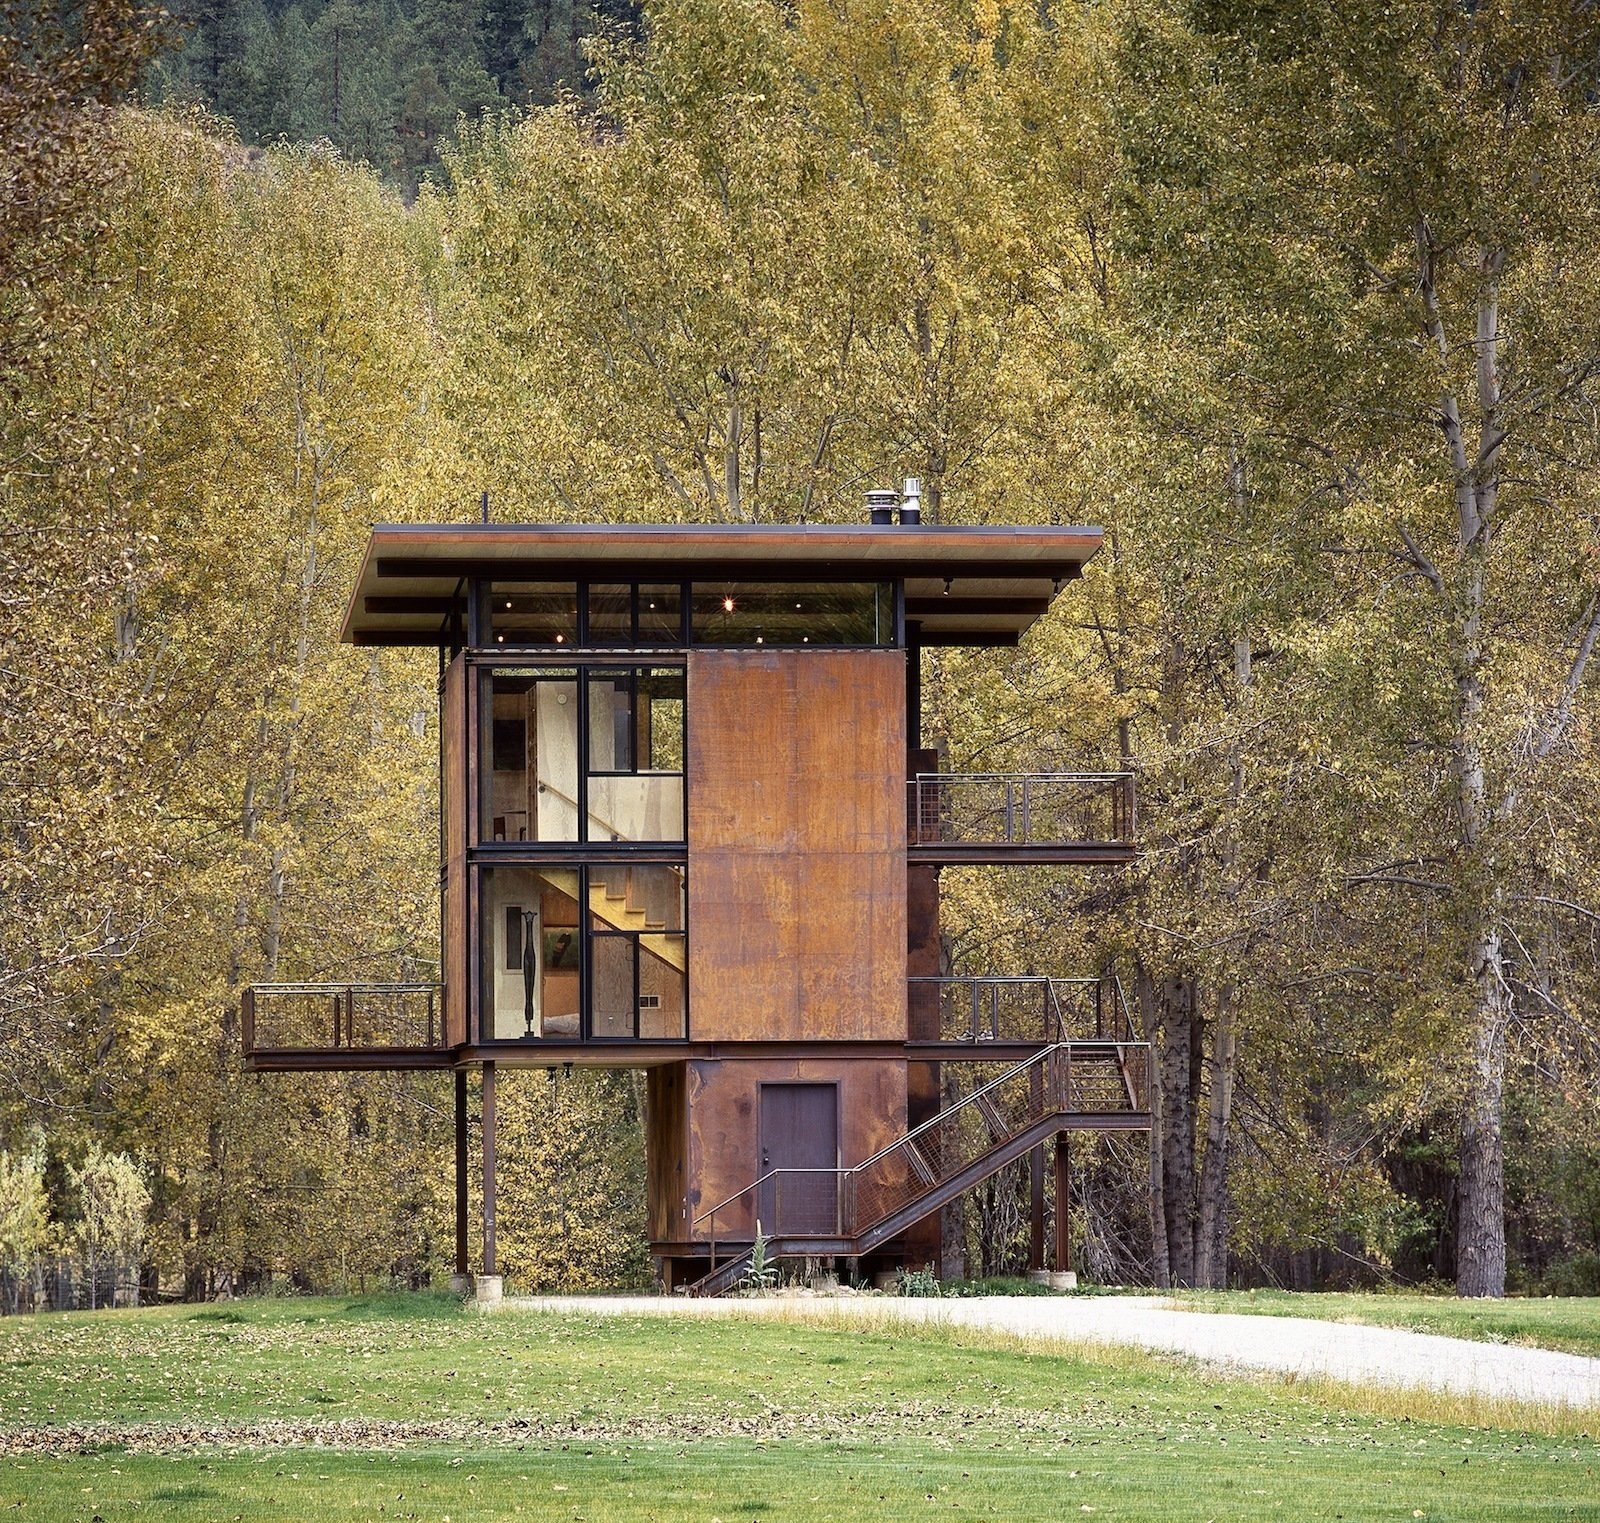 Exterior and Metal Delta Shelter, Mazama, Washington, 2002. Photo by Tim Bies/Olson Kundig Architects.  Best Exterior Photos from Building the Maxon House: Week 5